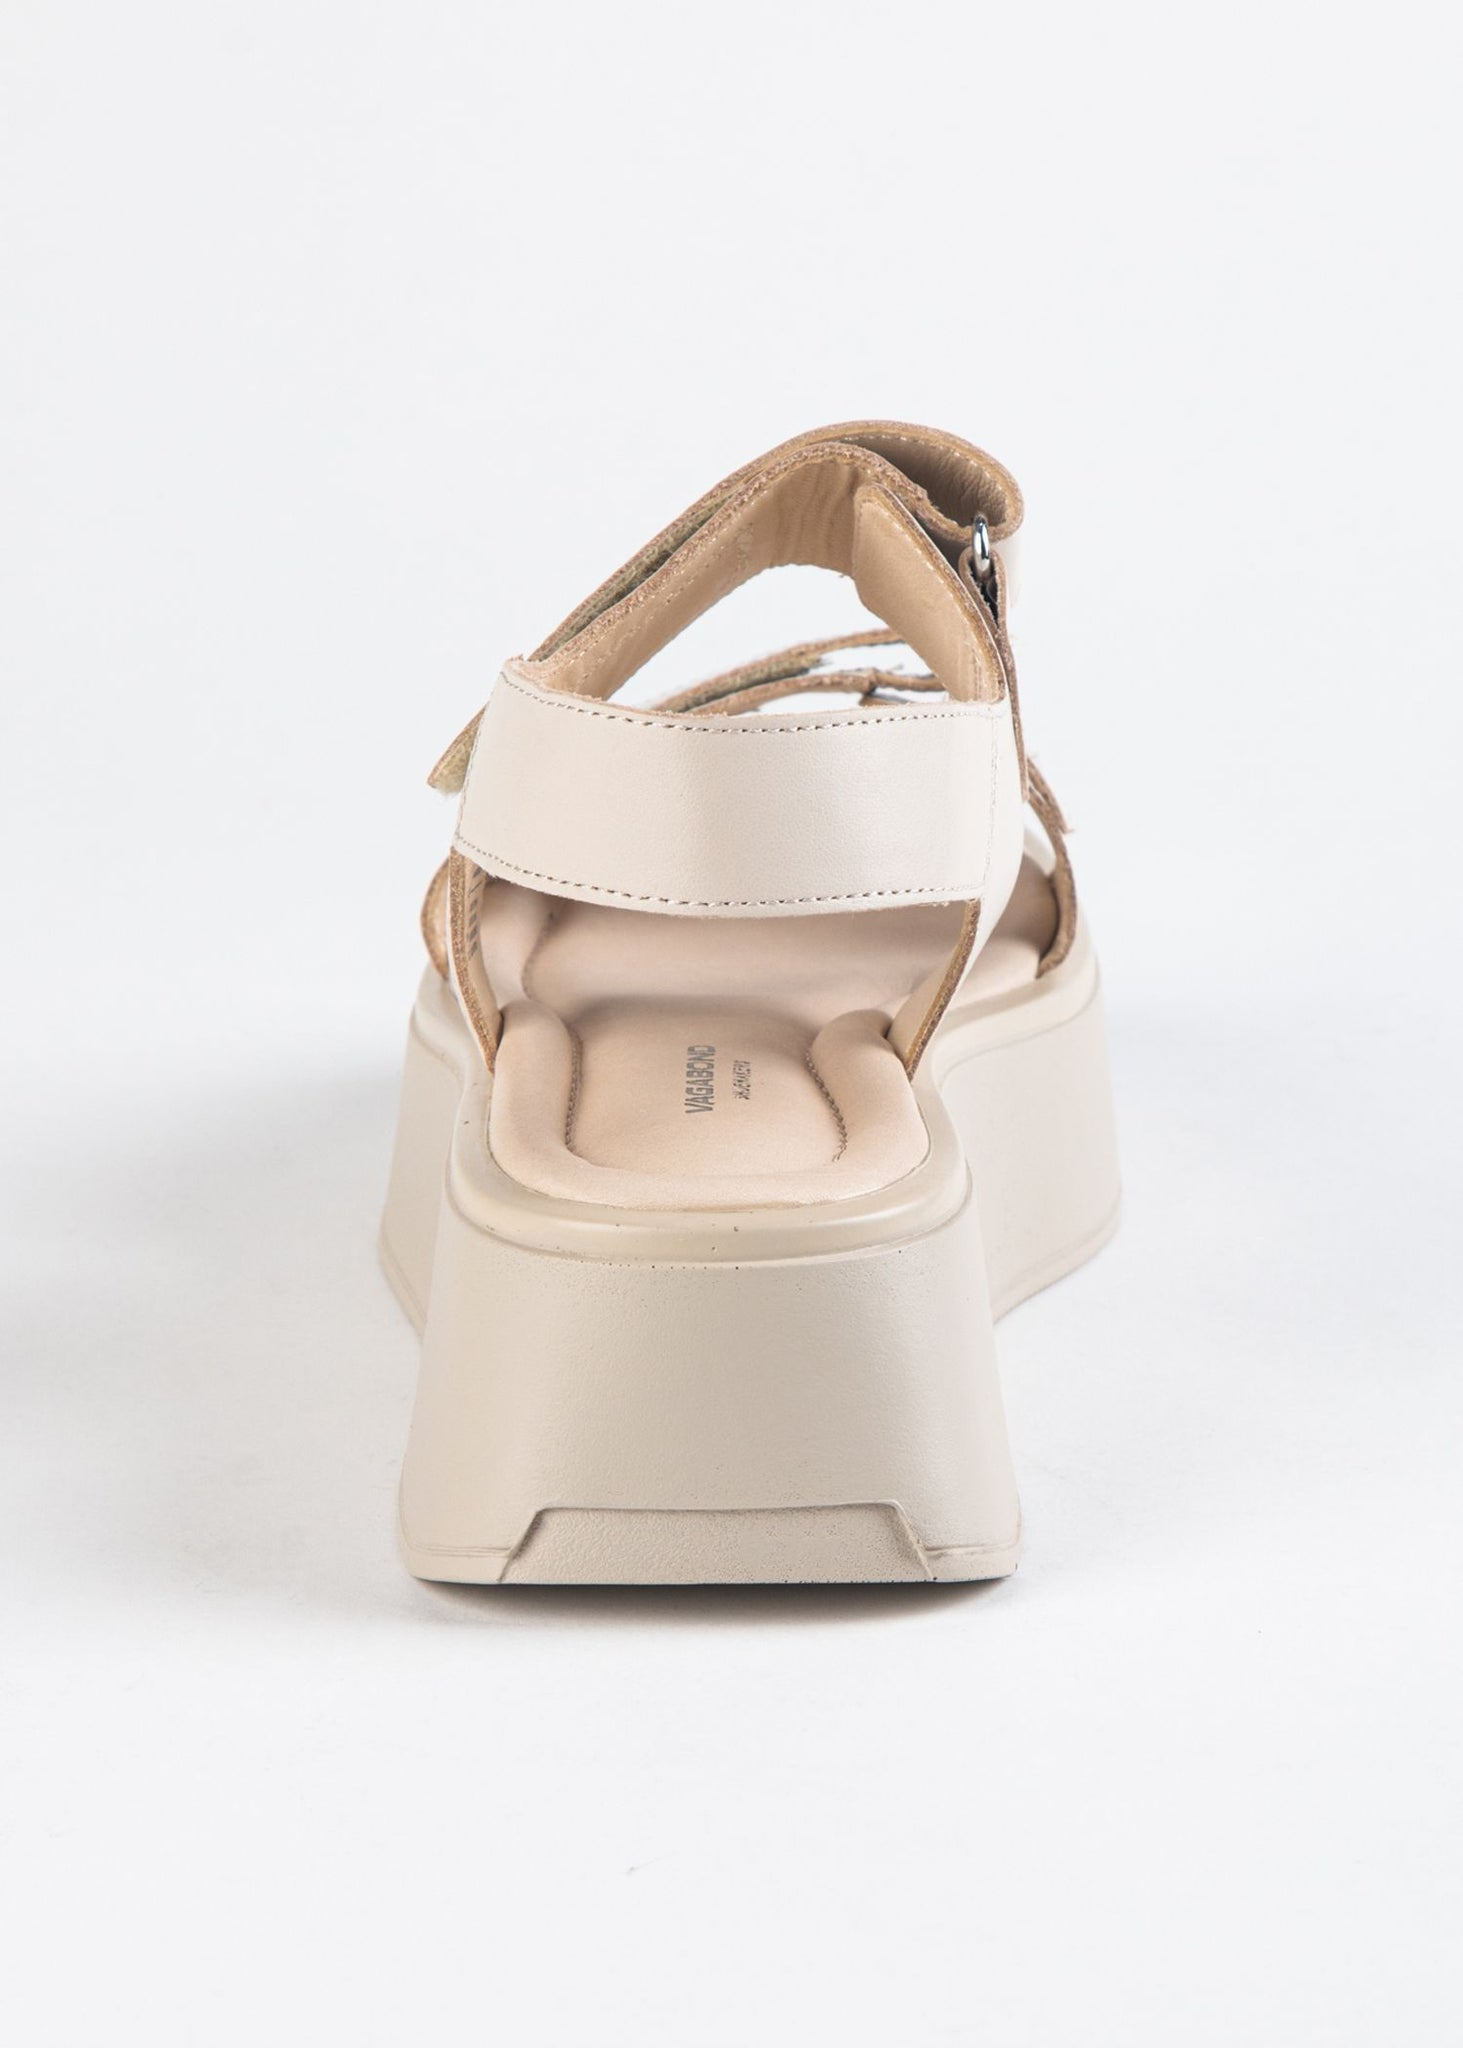 COURTNEY-5134 PLATFORM SANDAL